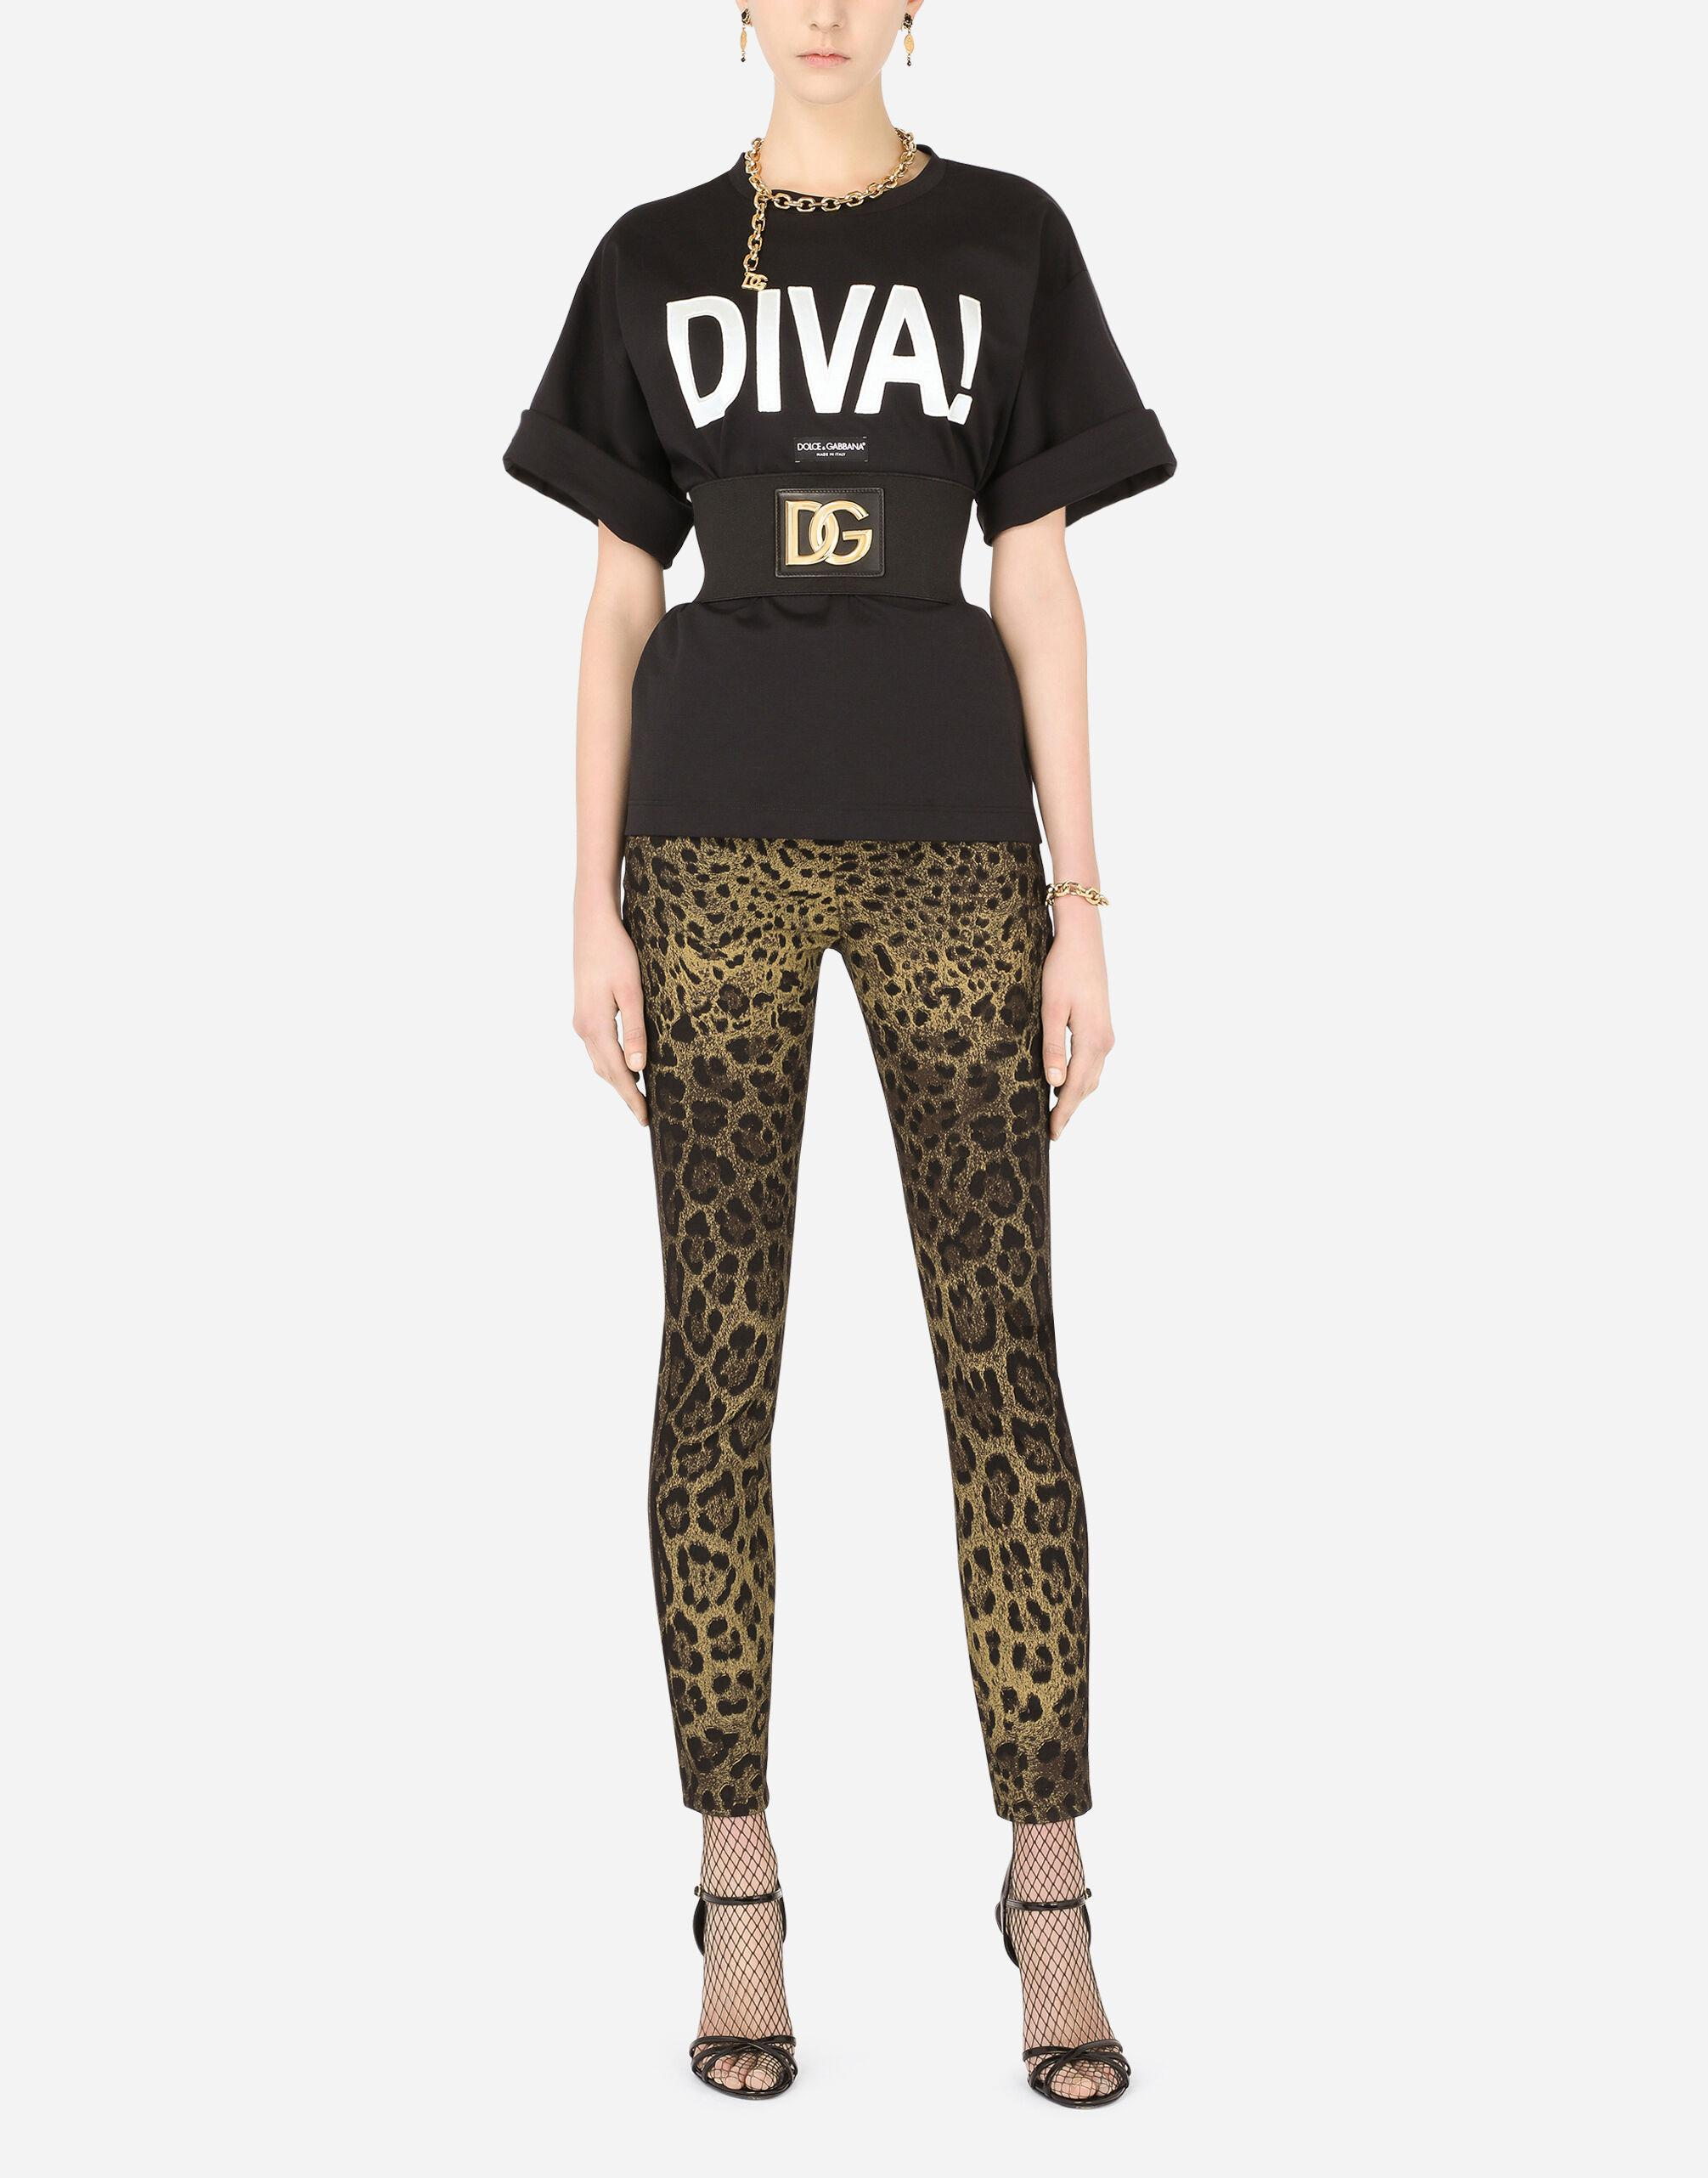 Jersey T-shirt with diva patch 4